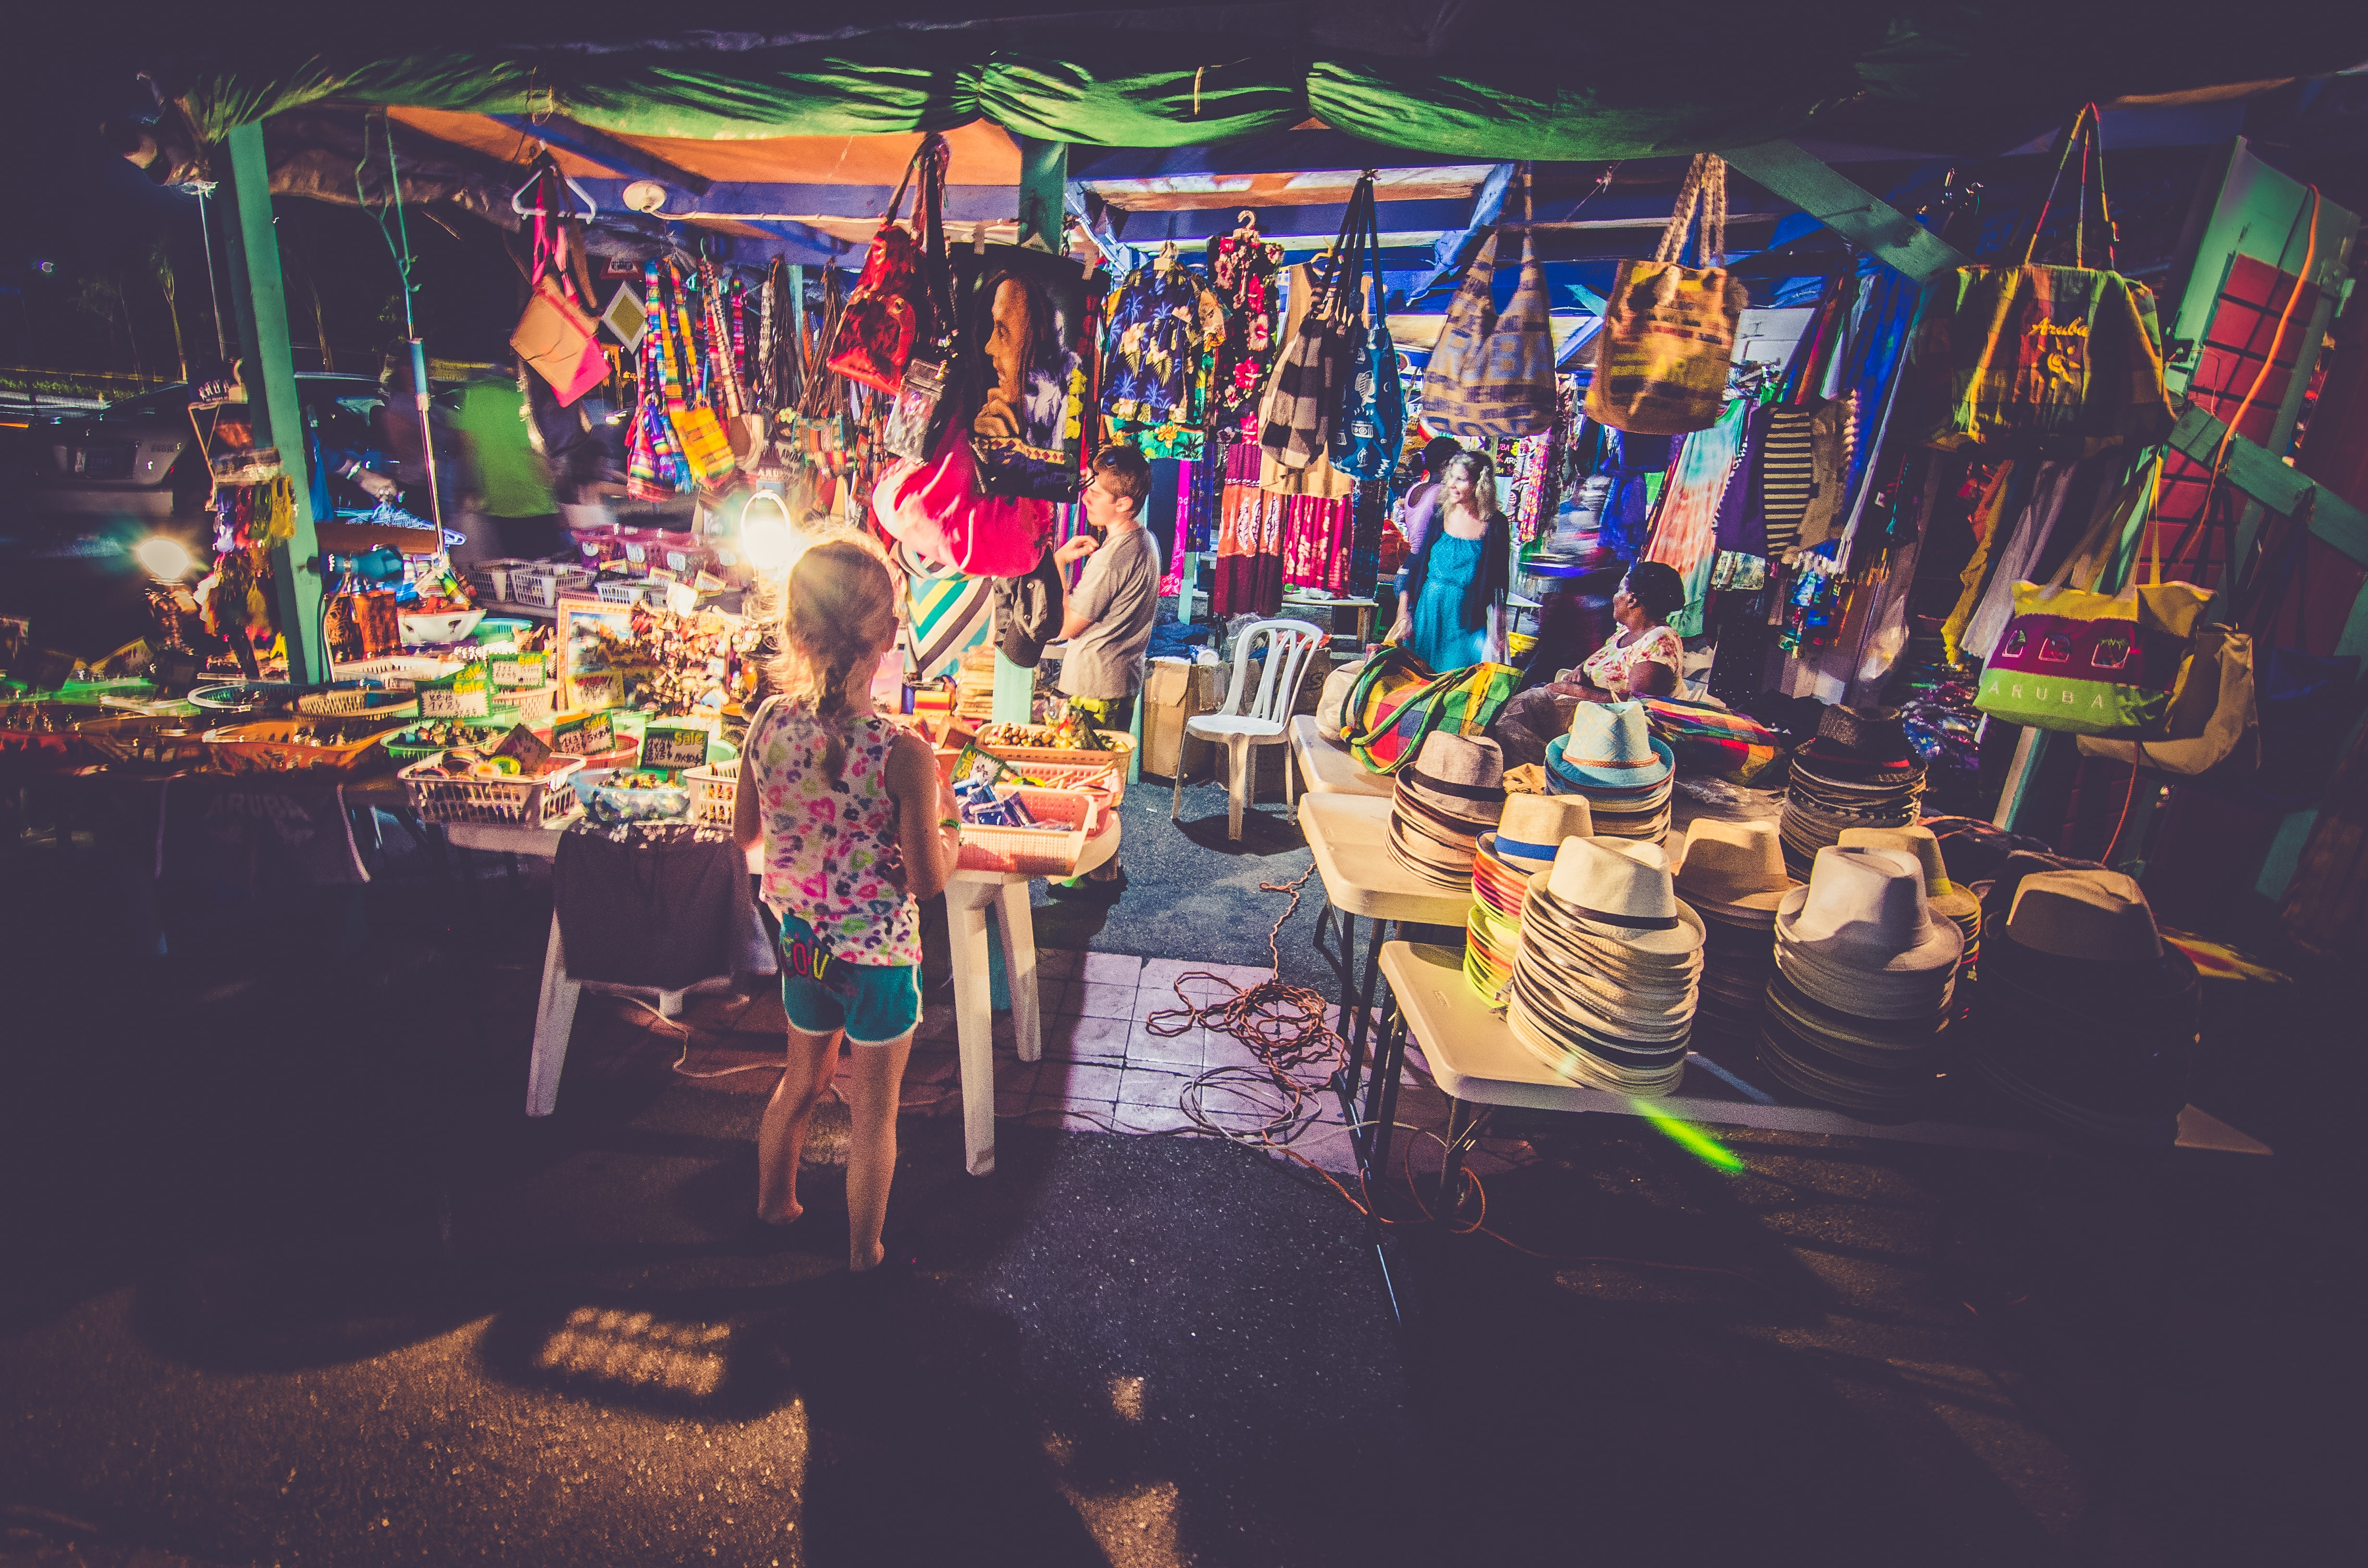 Children browsing the goods in a street market in Aruba at night